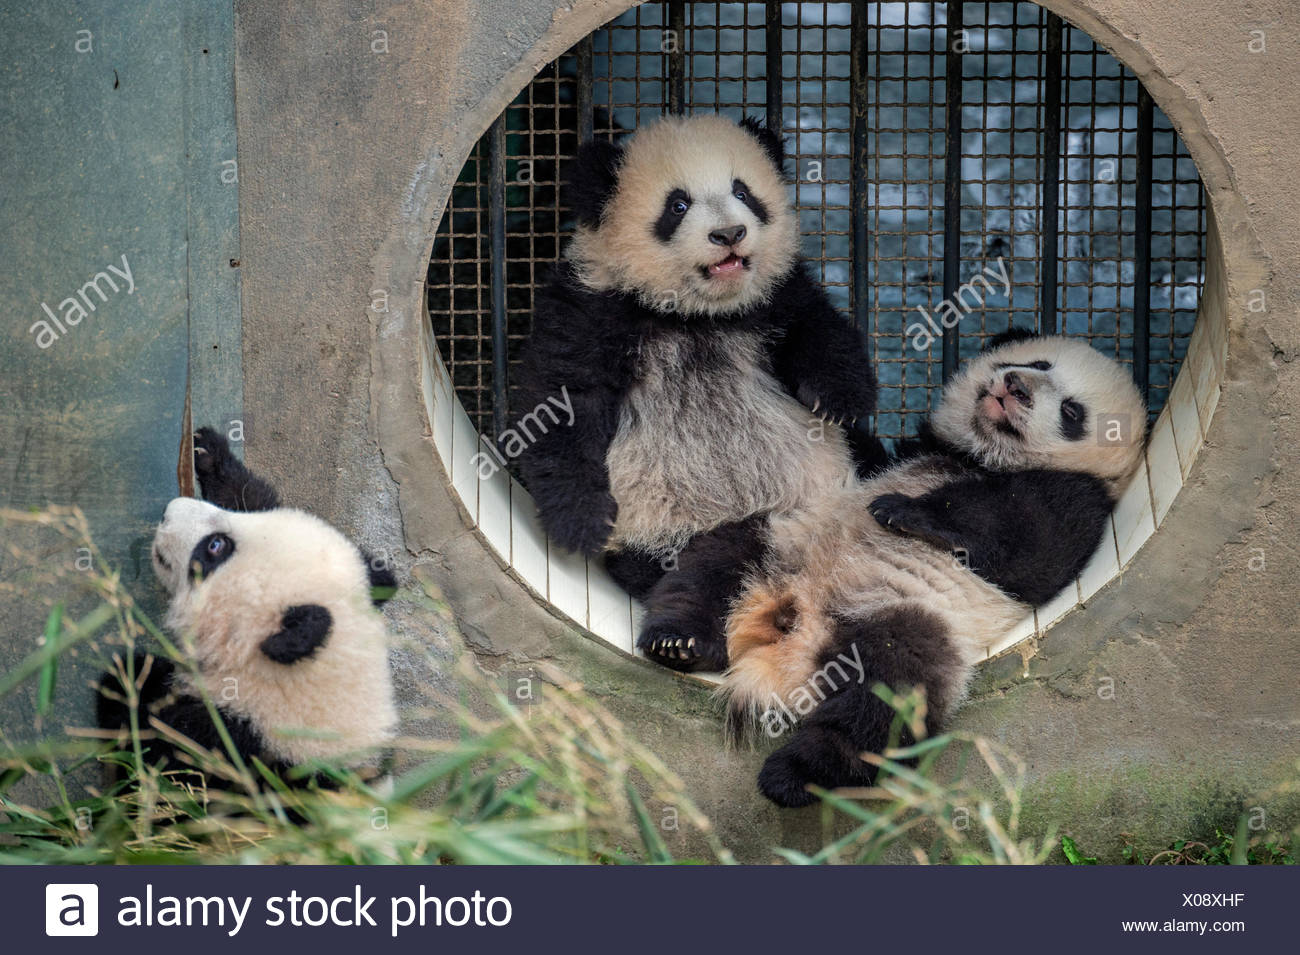 Three giant baby panda cubs raised by a single mother at the Bifengxia Giant Panda Breeding and Research Center. - Stock Image